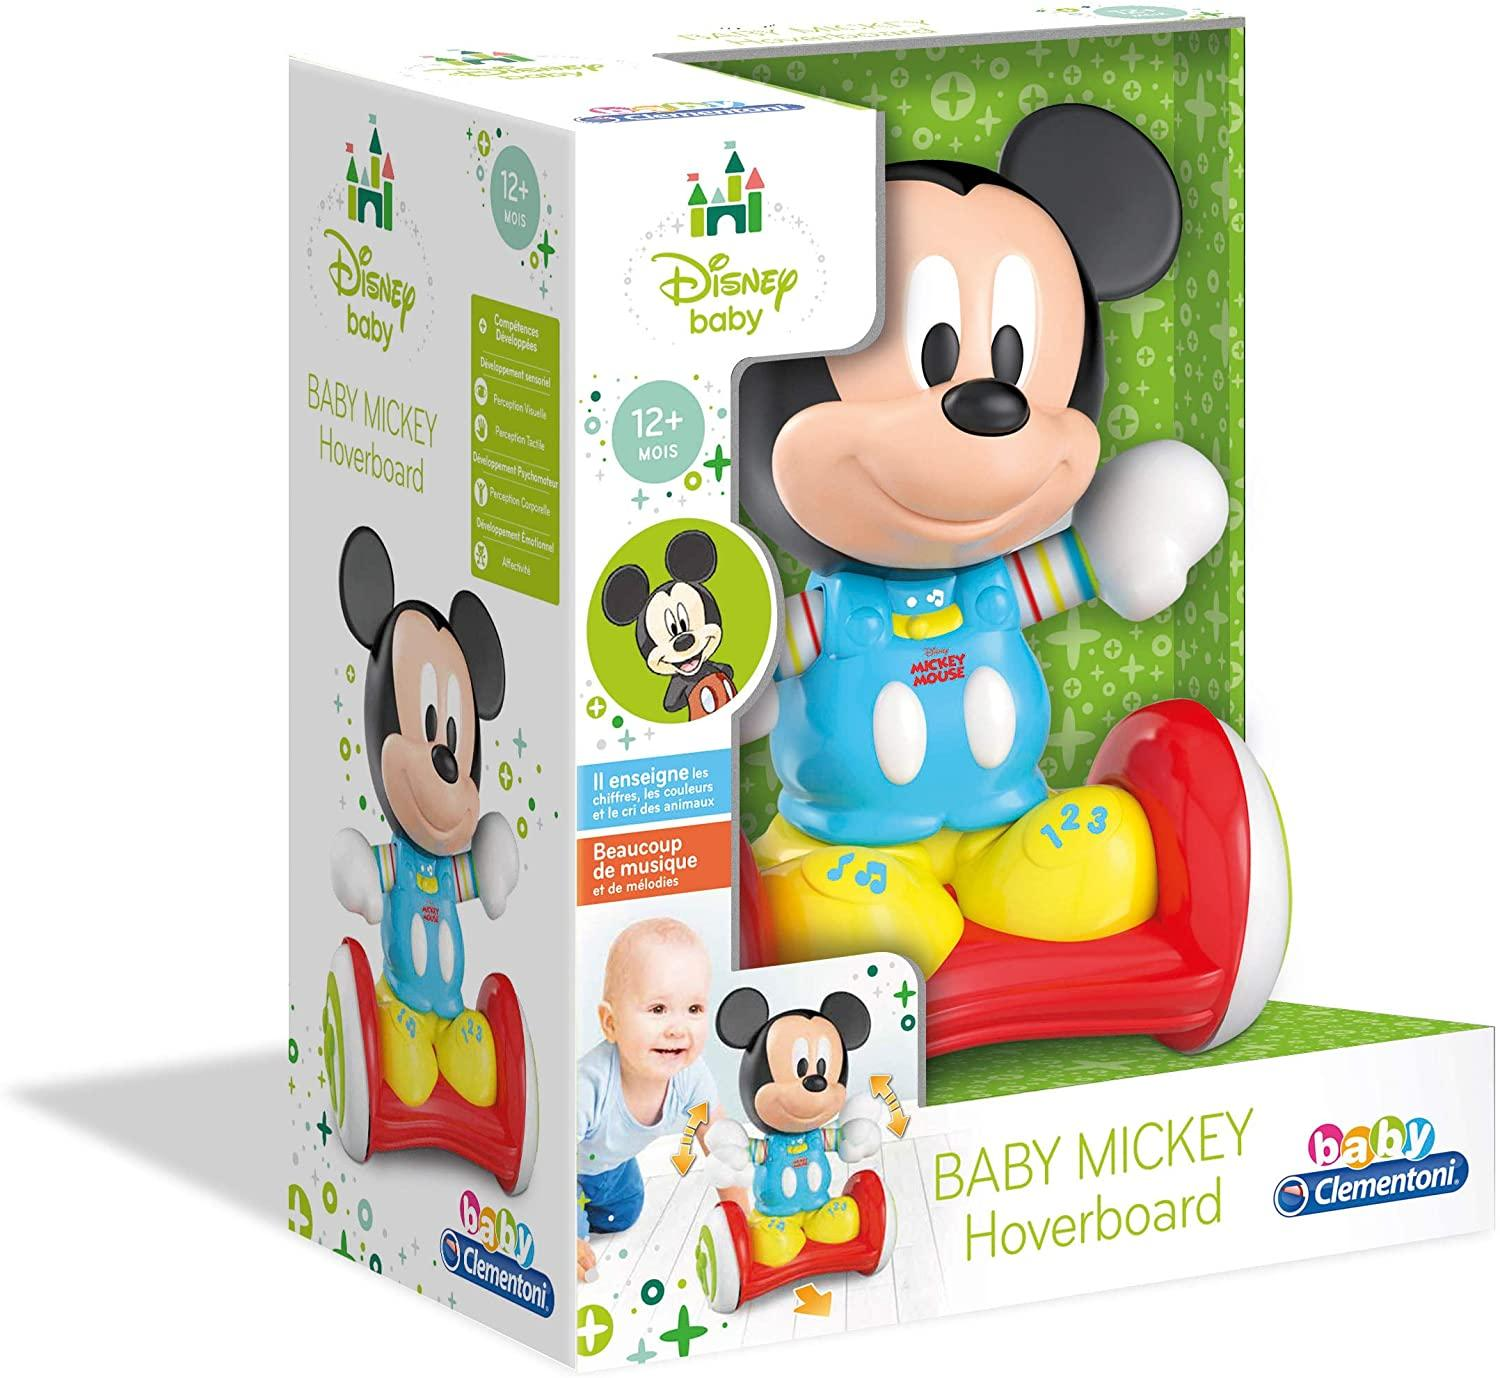 Mickey hoverboard